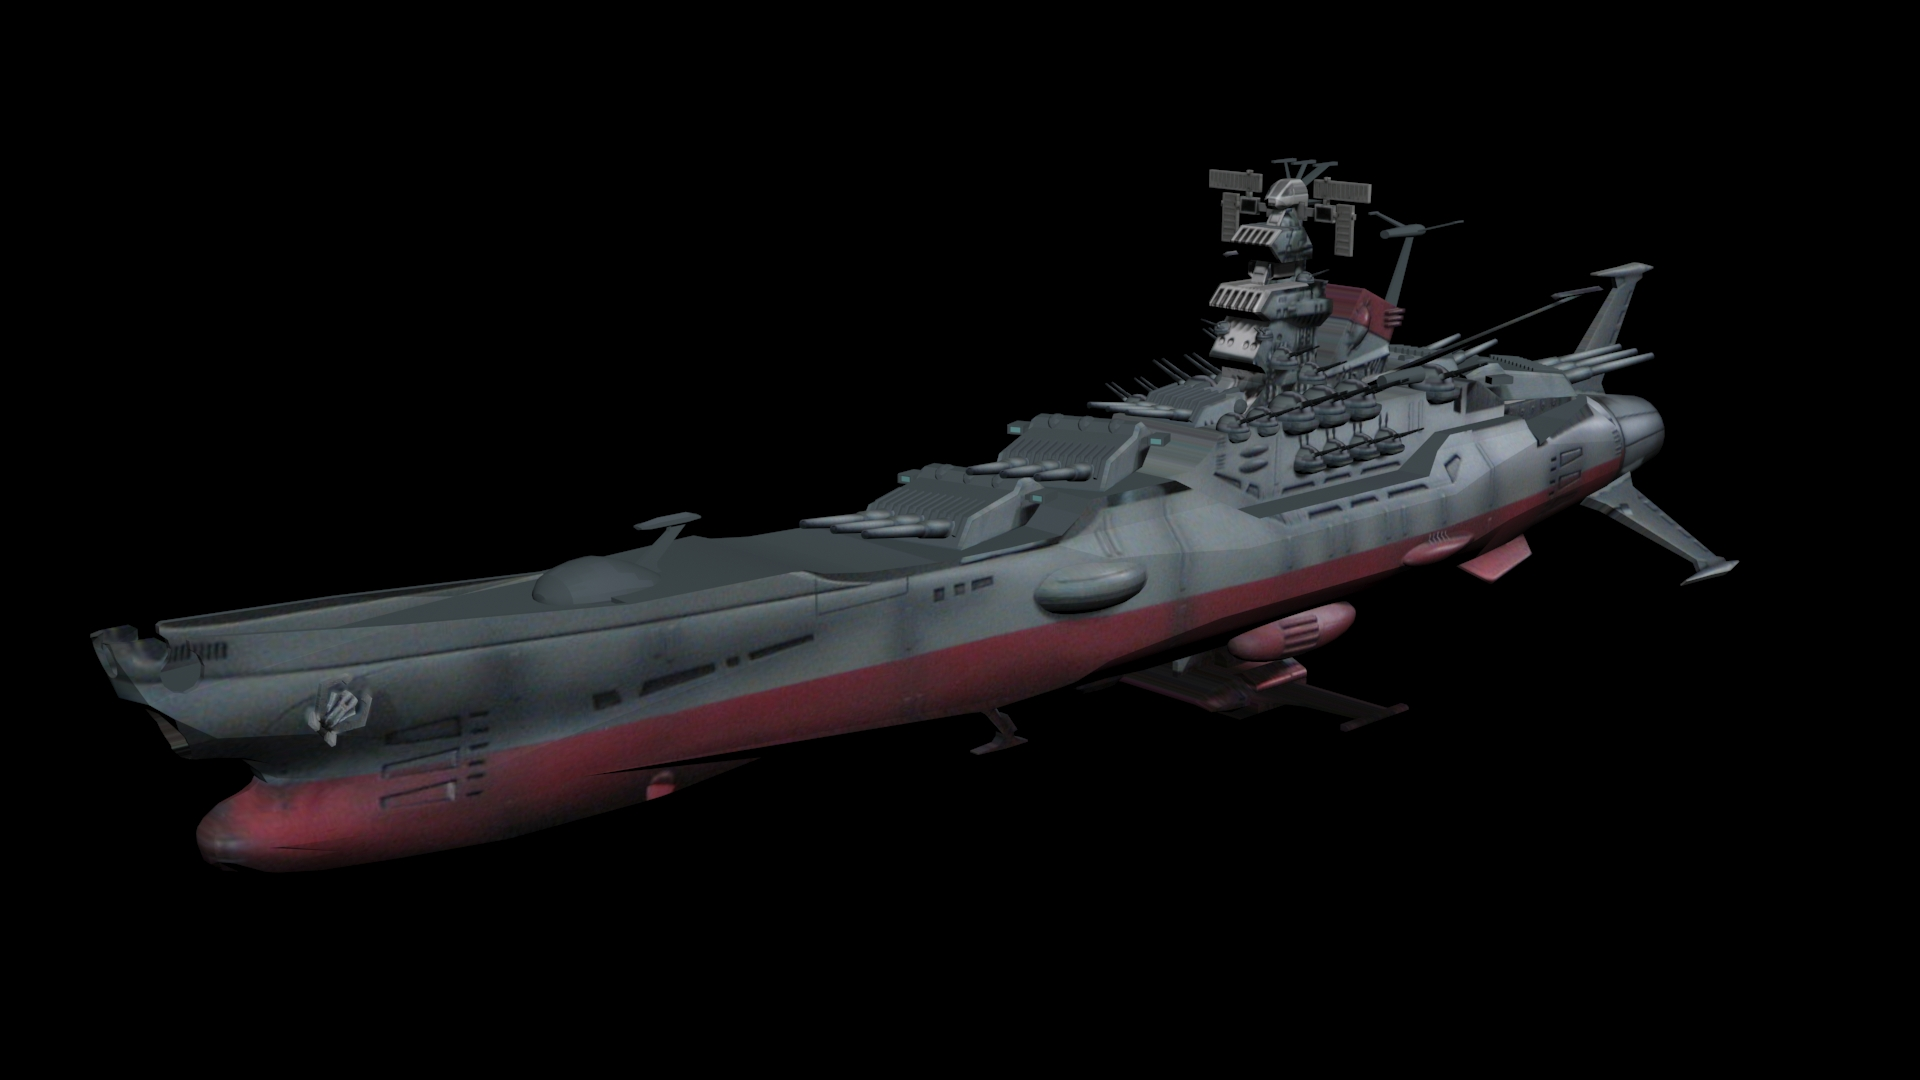 3d Modern Wallpaper Designs 3ds Max Release Space Battleship Yamato By Aequitas